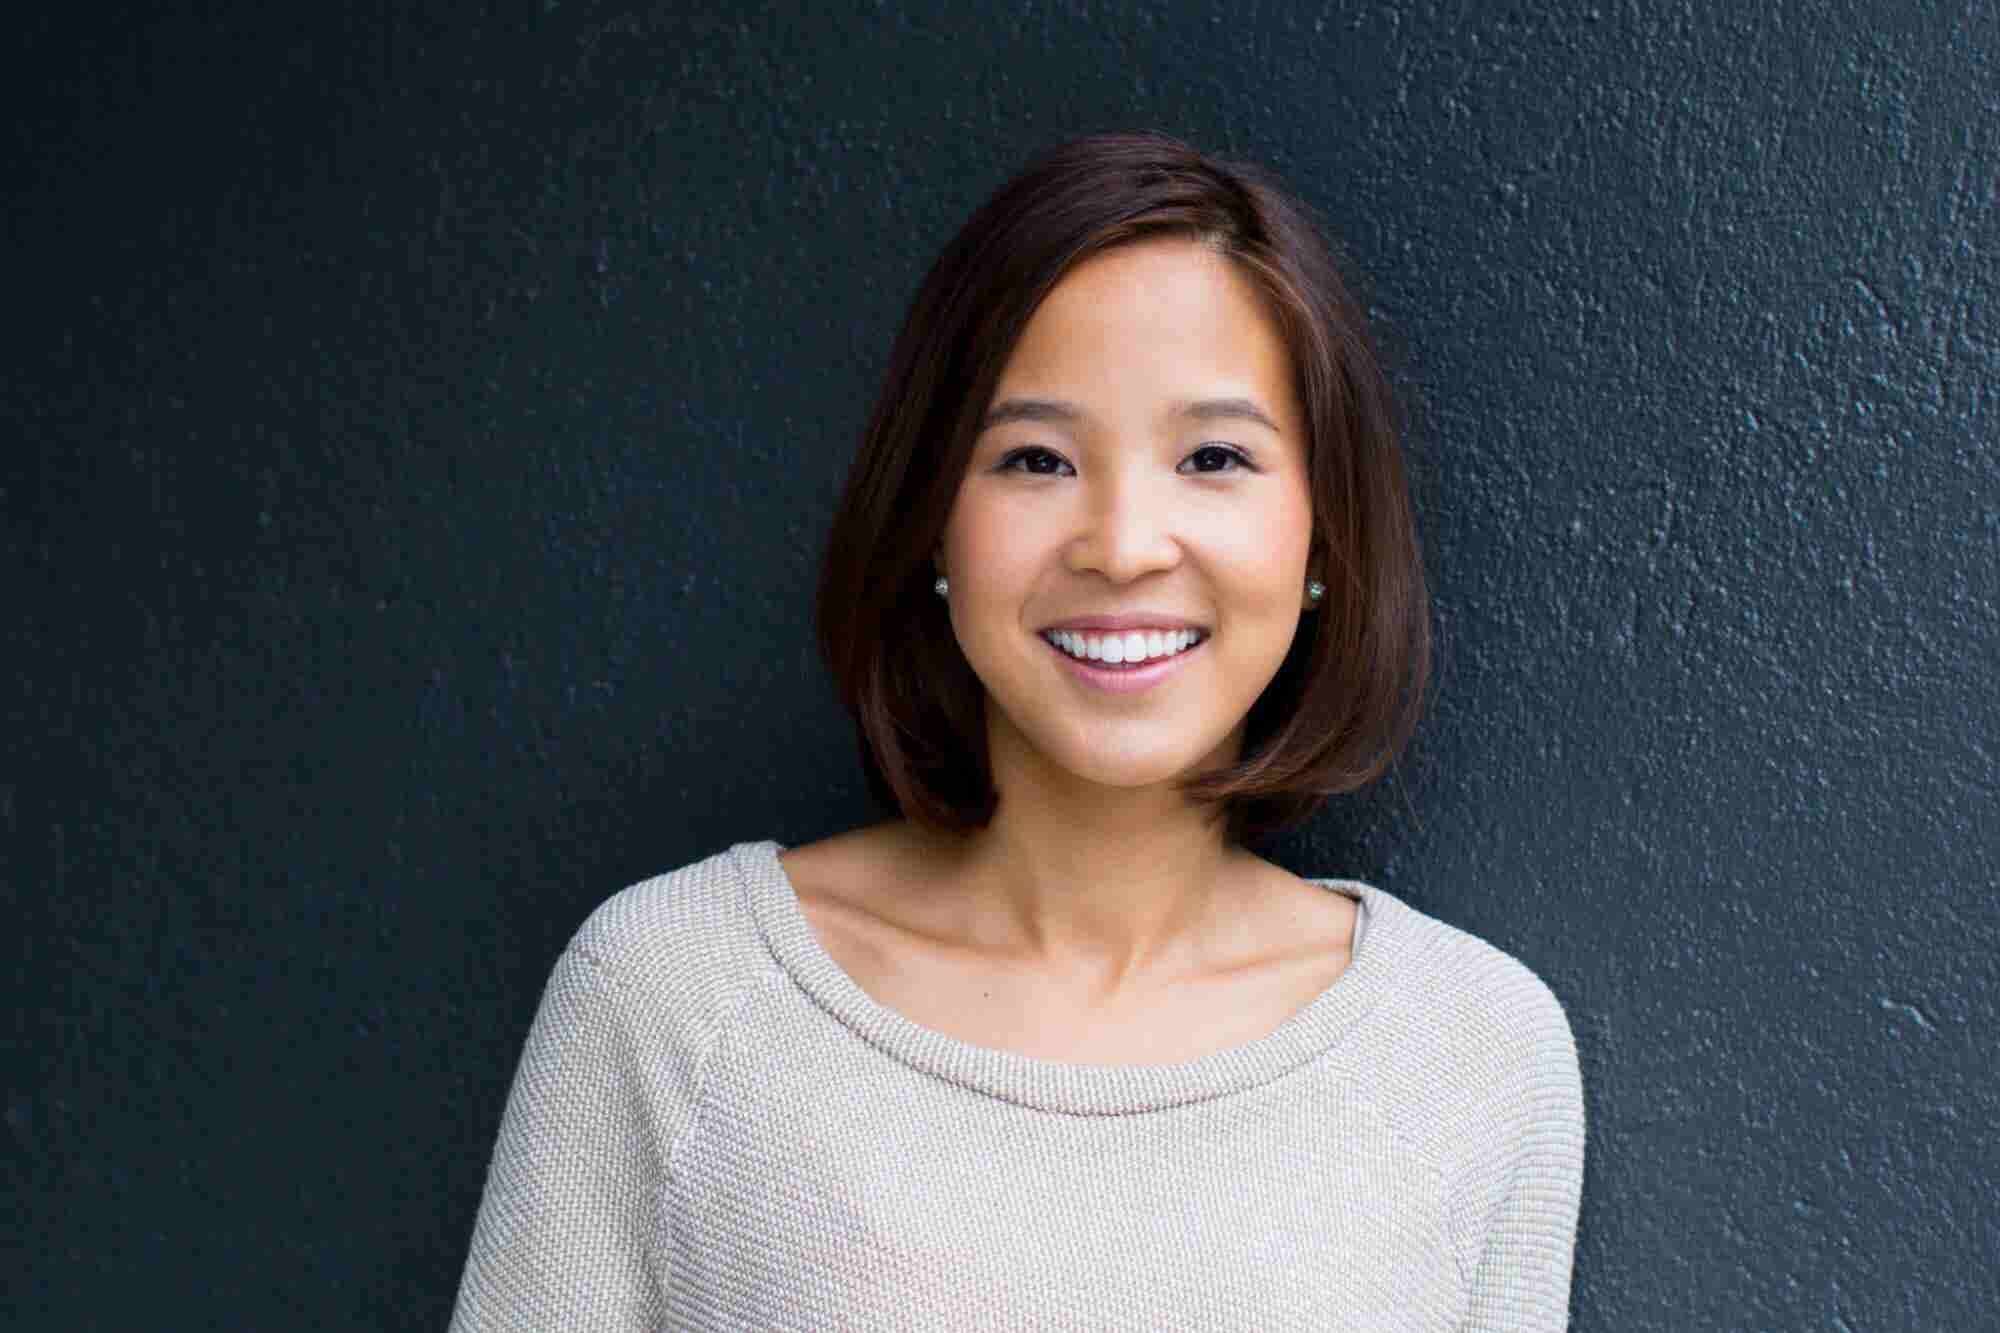 The Founder of Meditation App Simple Habit Shares How She Finds Joy Am...